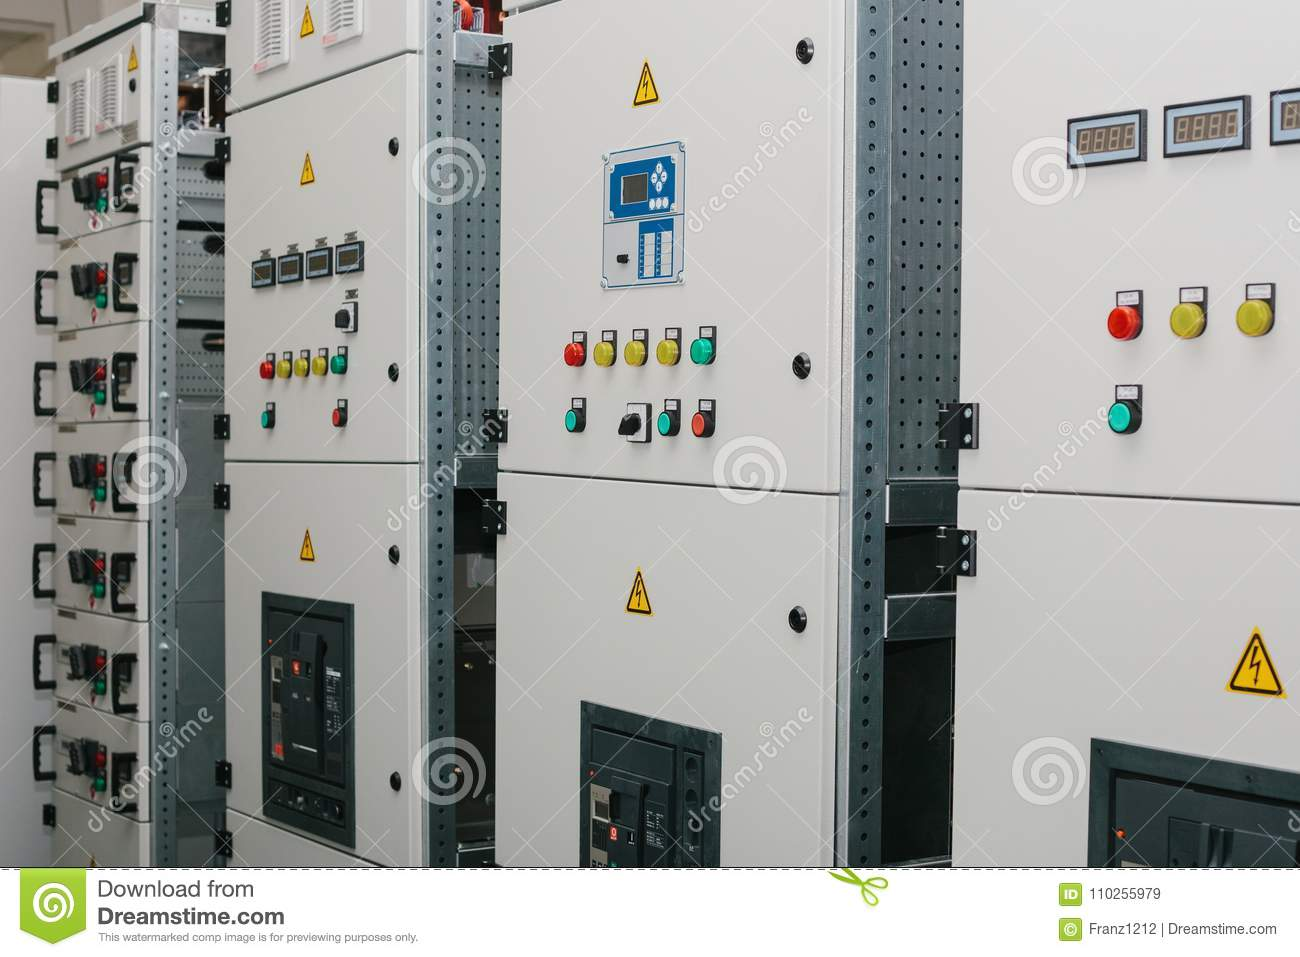 Smart Fuse Box Wiring Library 917 271021 Craftsman Lawn Mower Wire Diagram Download Manufacture Of Low Voltage Cabinets Modern Technologies In The Electric Power Industry